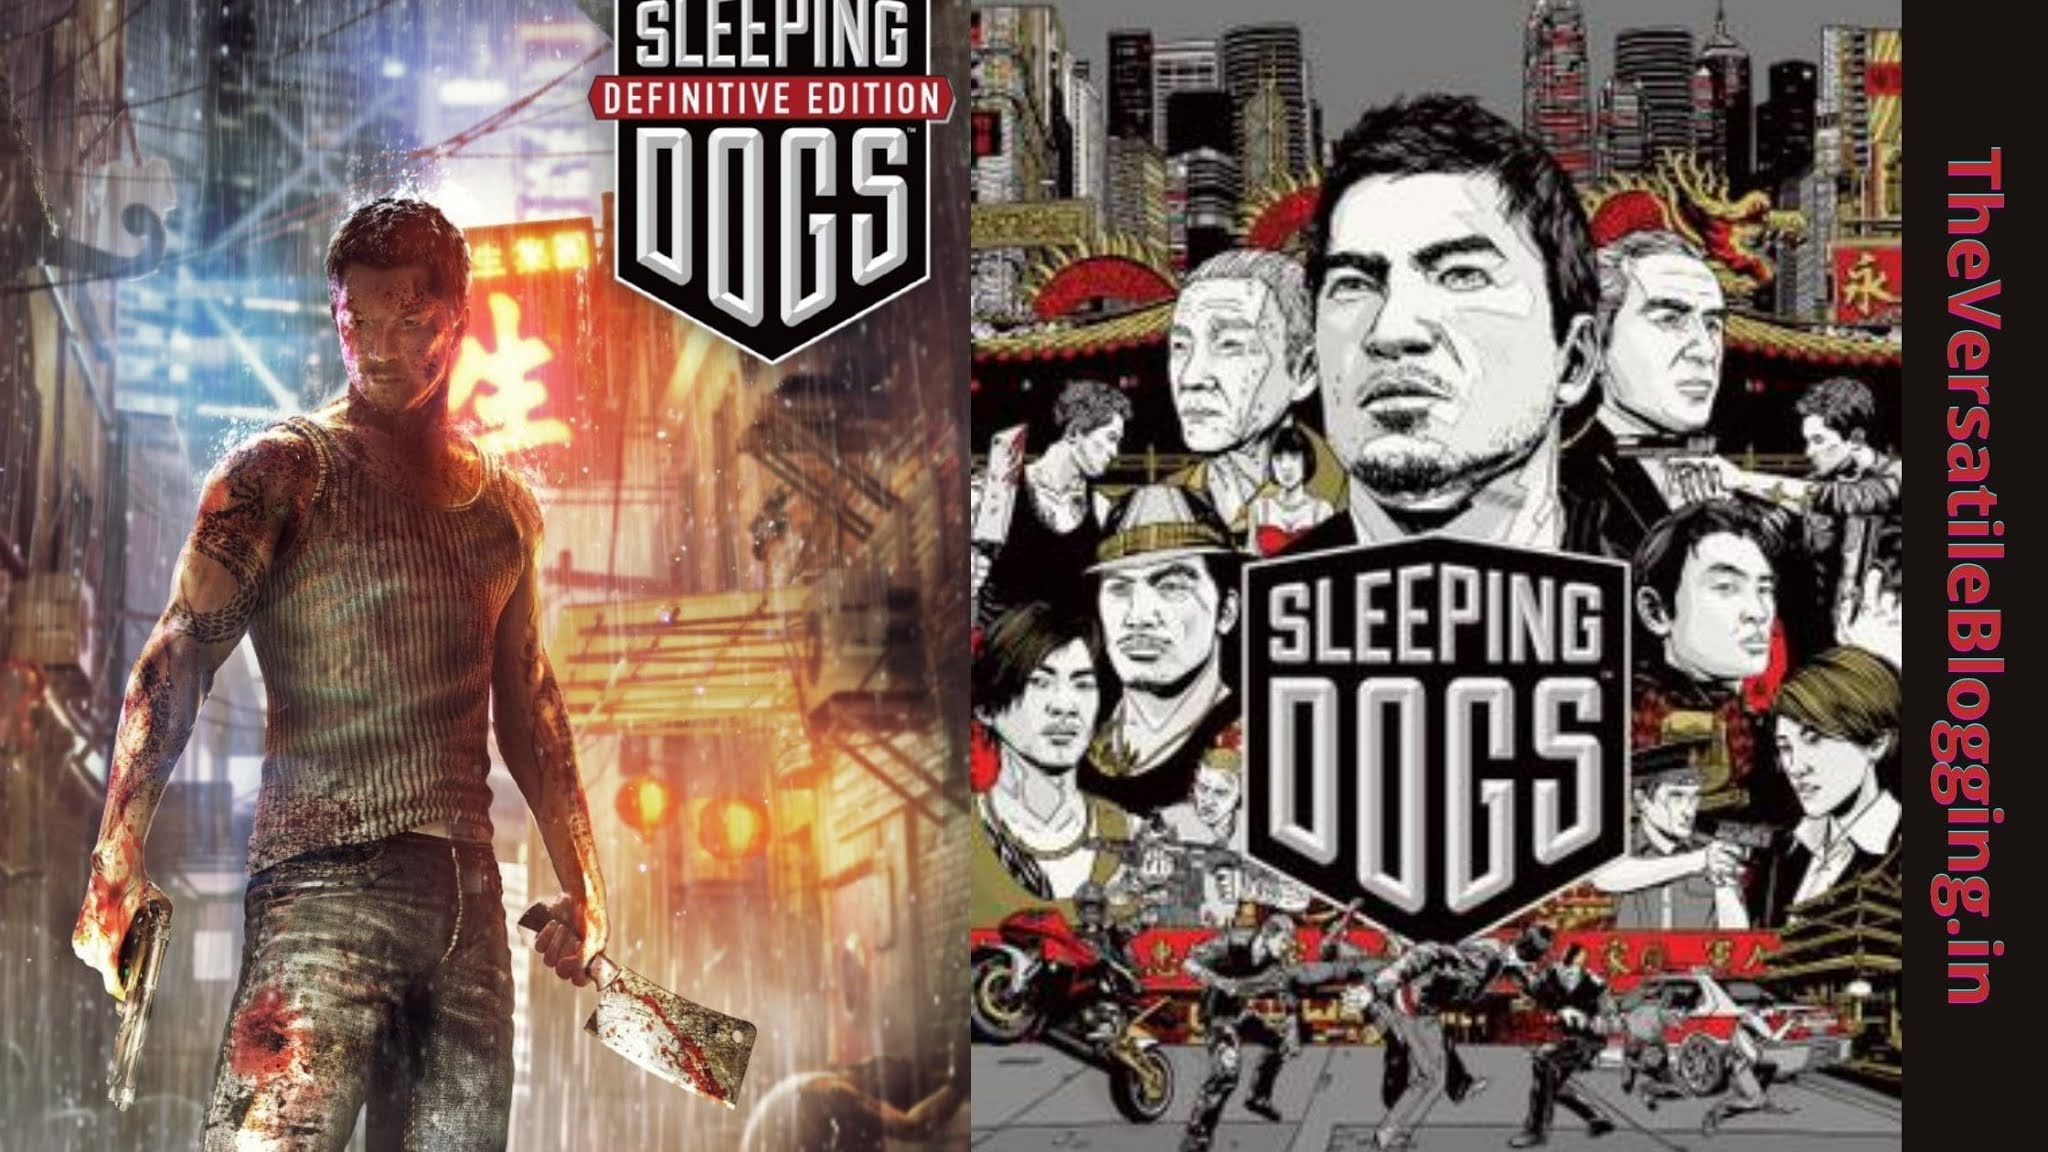 Sleeping Dogs - Best Games Like GTA For PC [Latest]